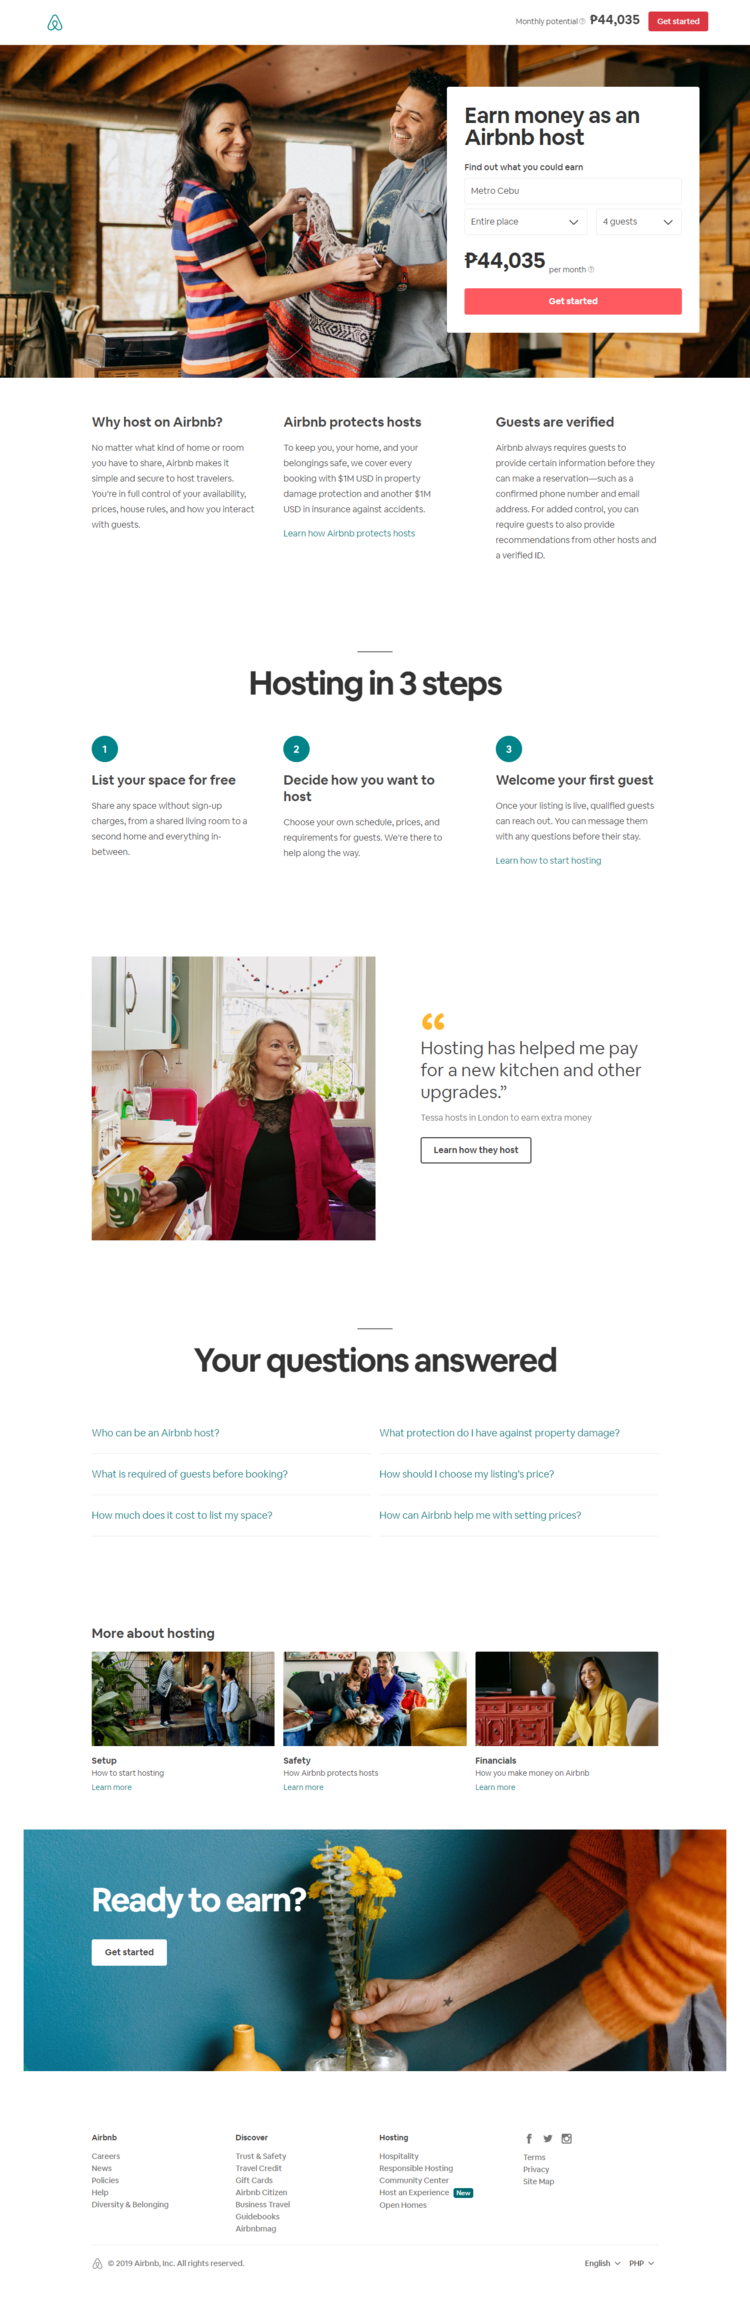 How to recreate the AirBnb landing page look and feel in Ontraport